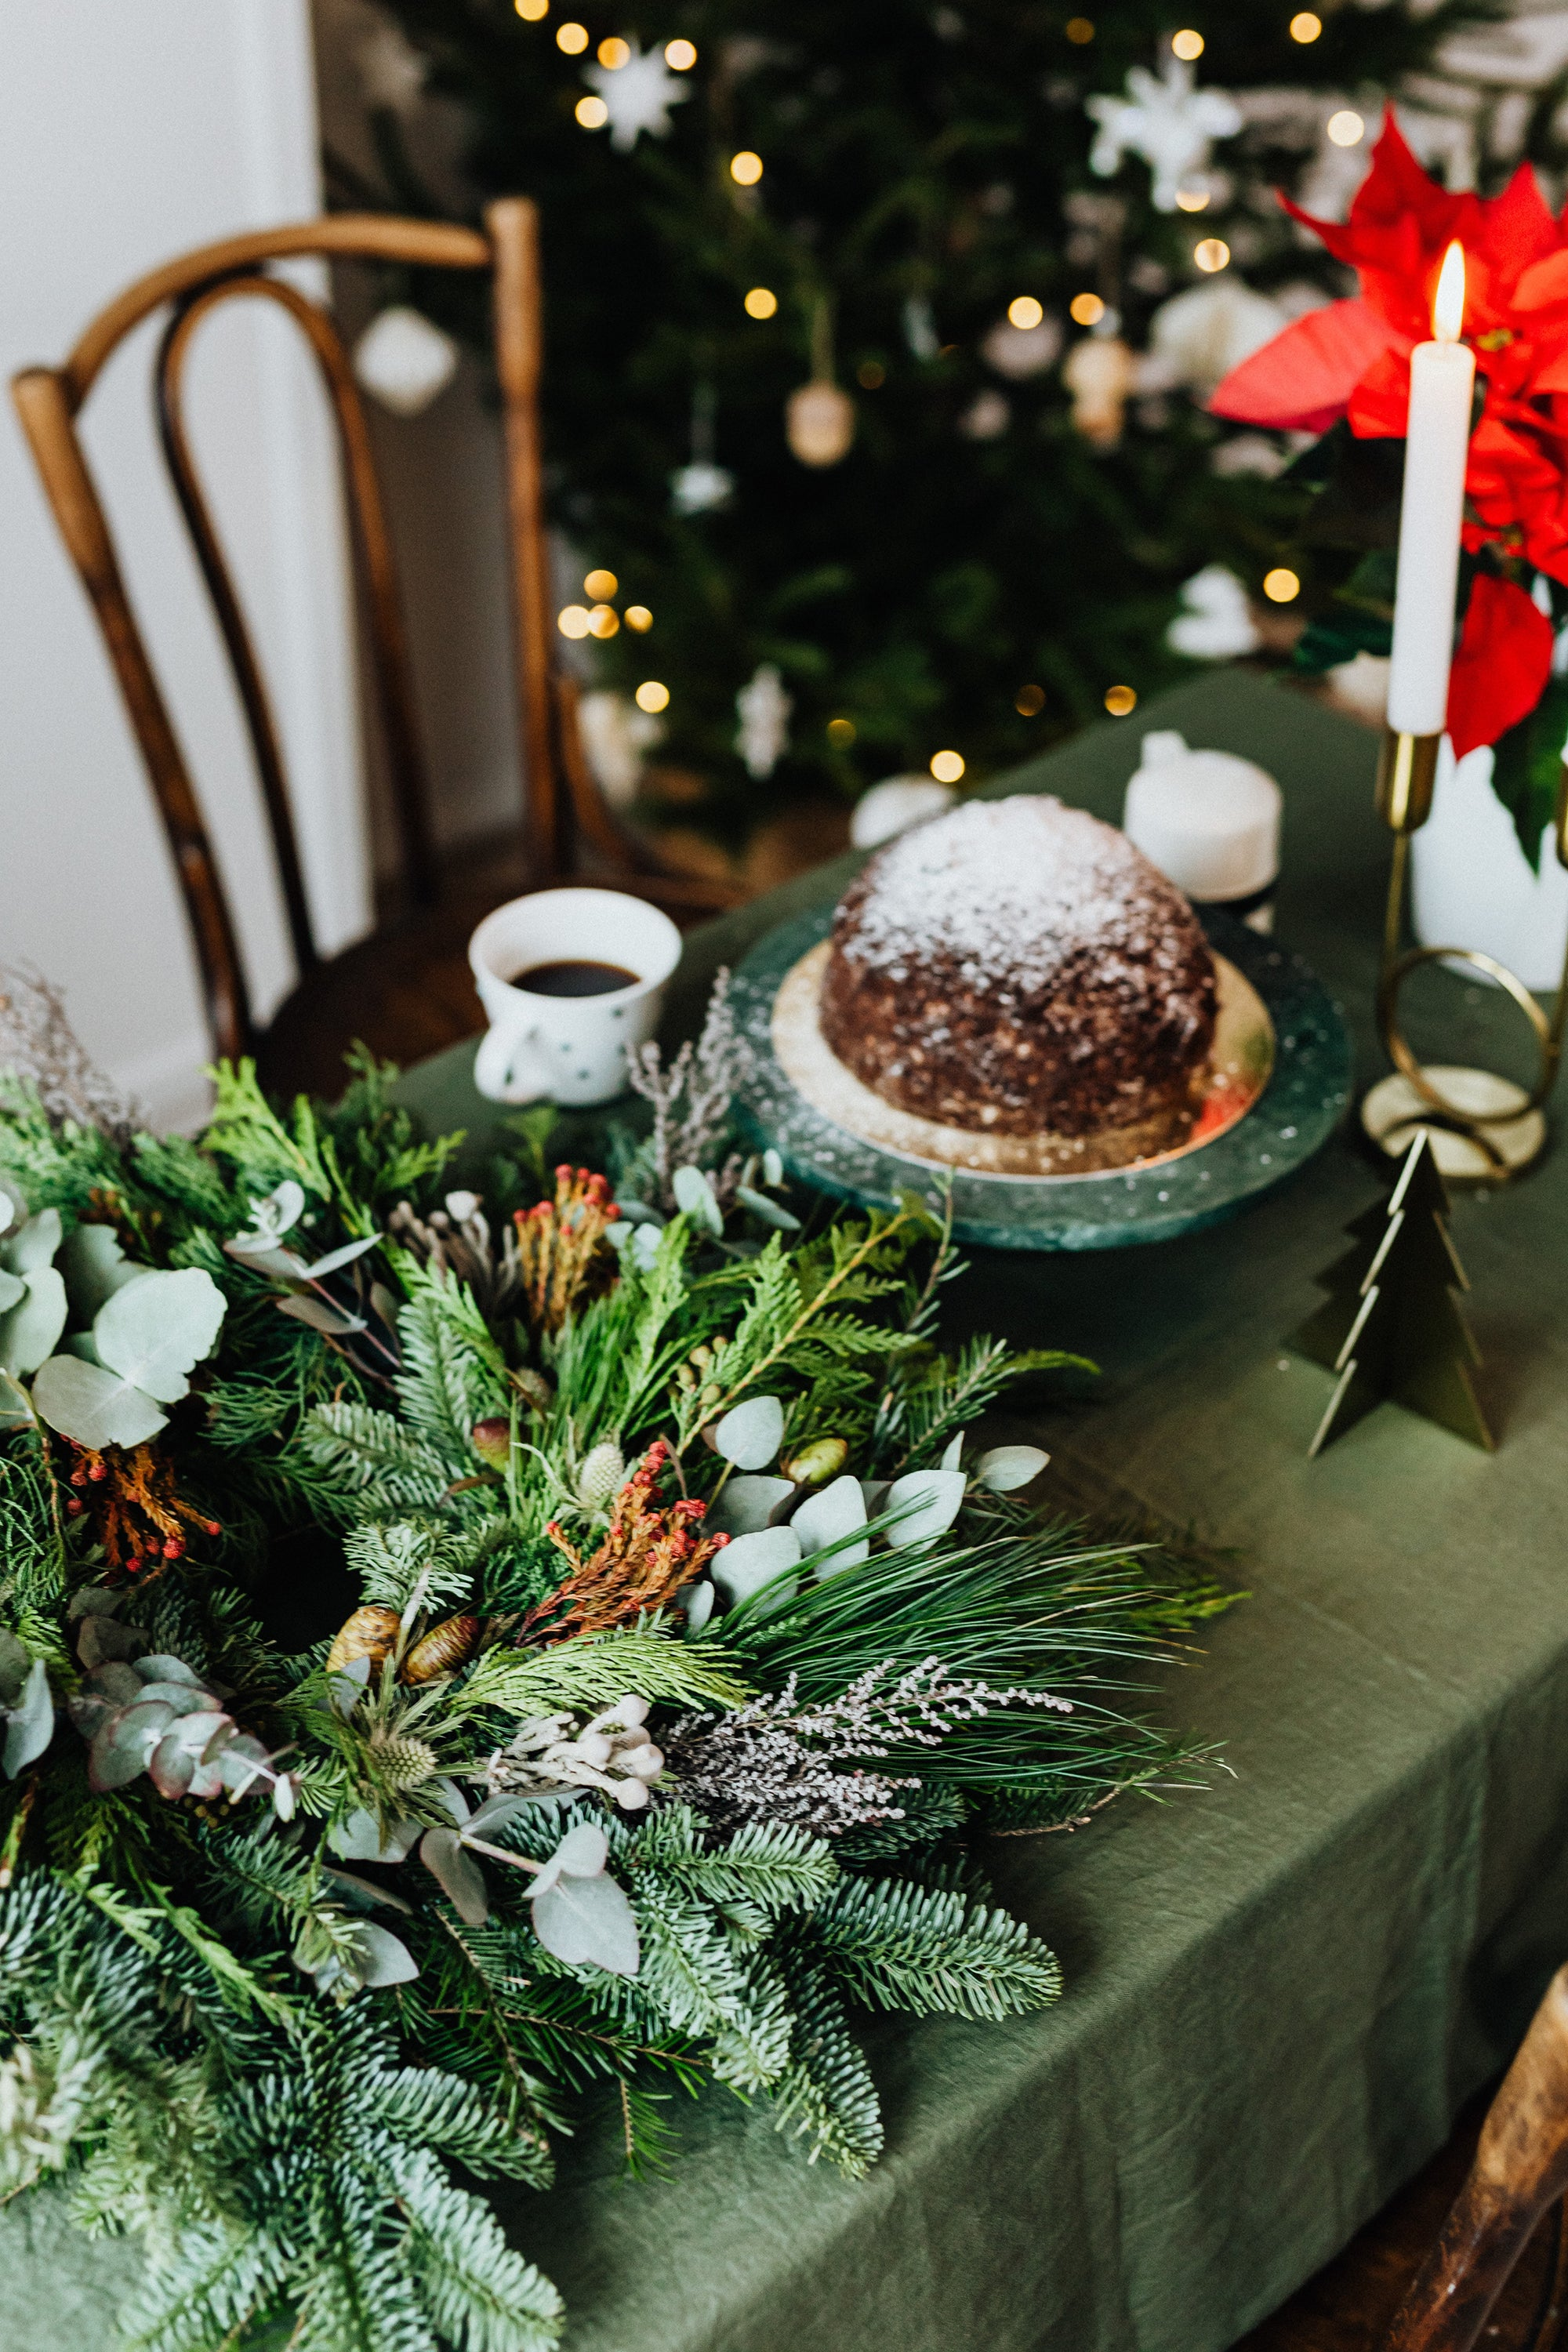 Safari Journal / Blog by Safari Fusion | Christmas prettiness | Decorating the Christmas table